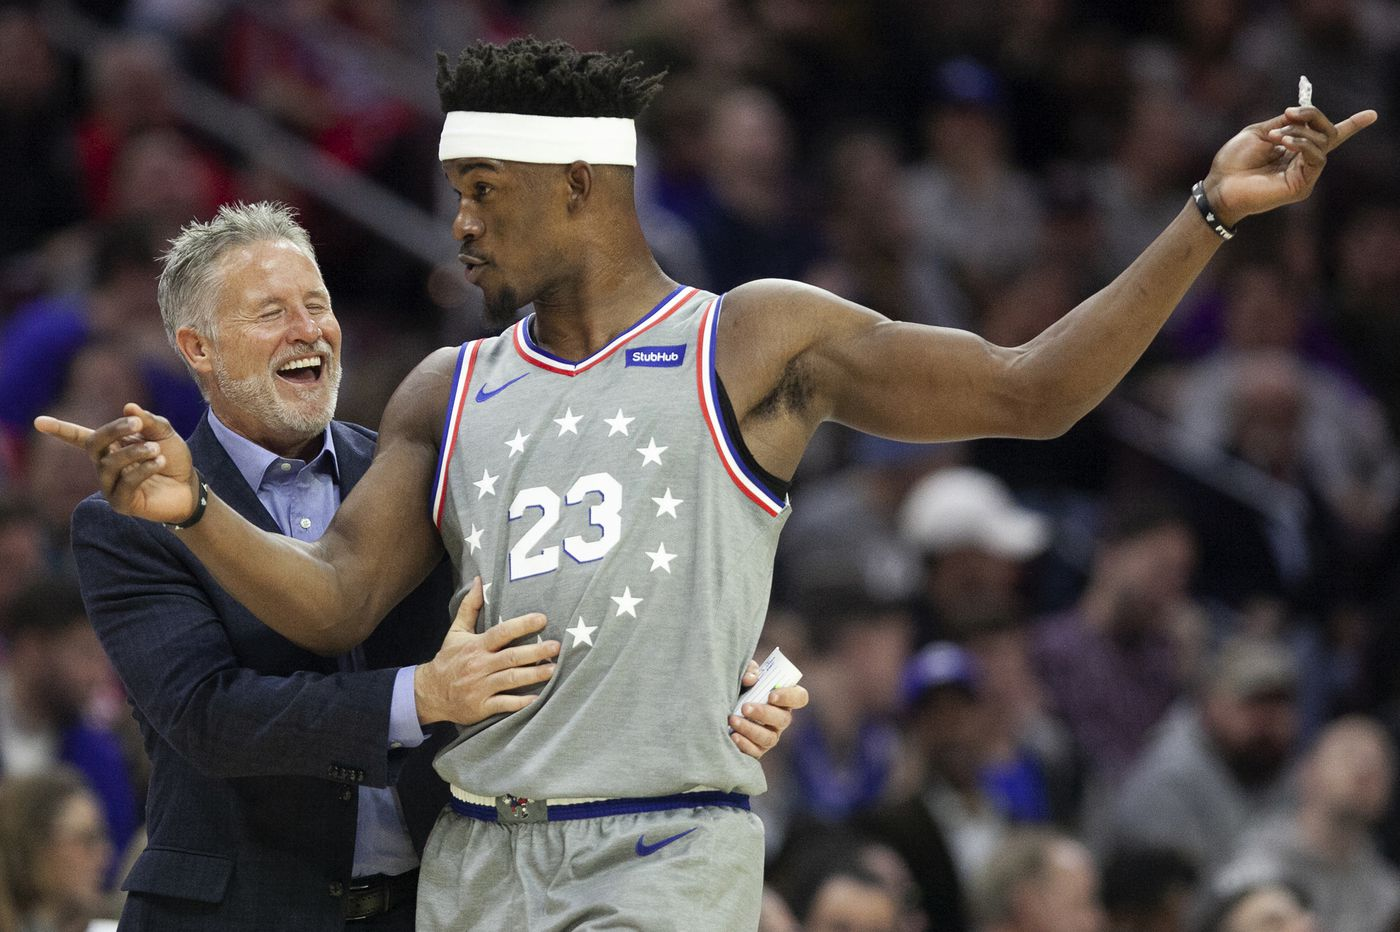 Sixers' Jimmy Butler has been a big draw on TV for NBC Sports Philadelphia